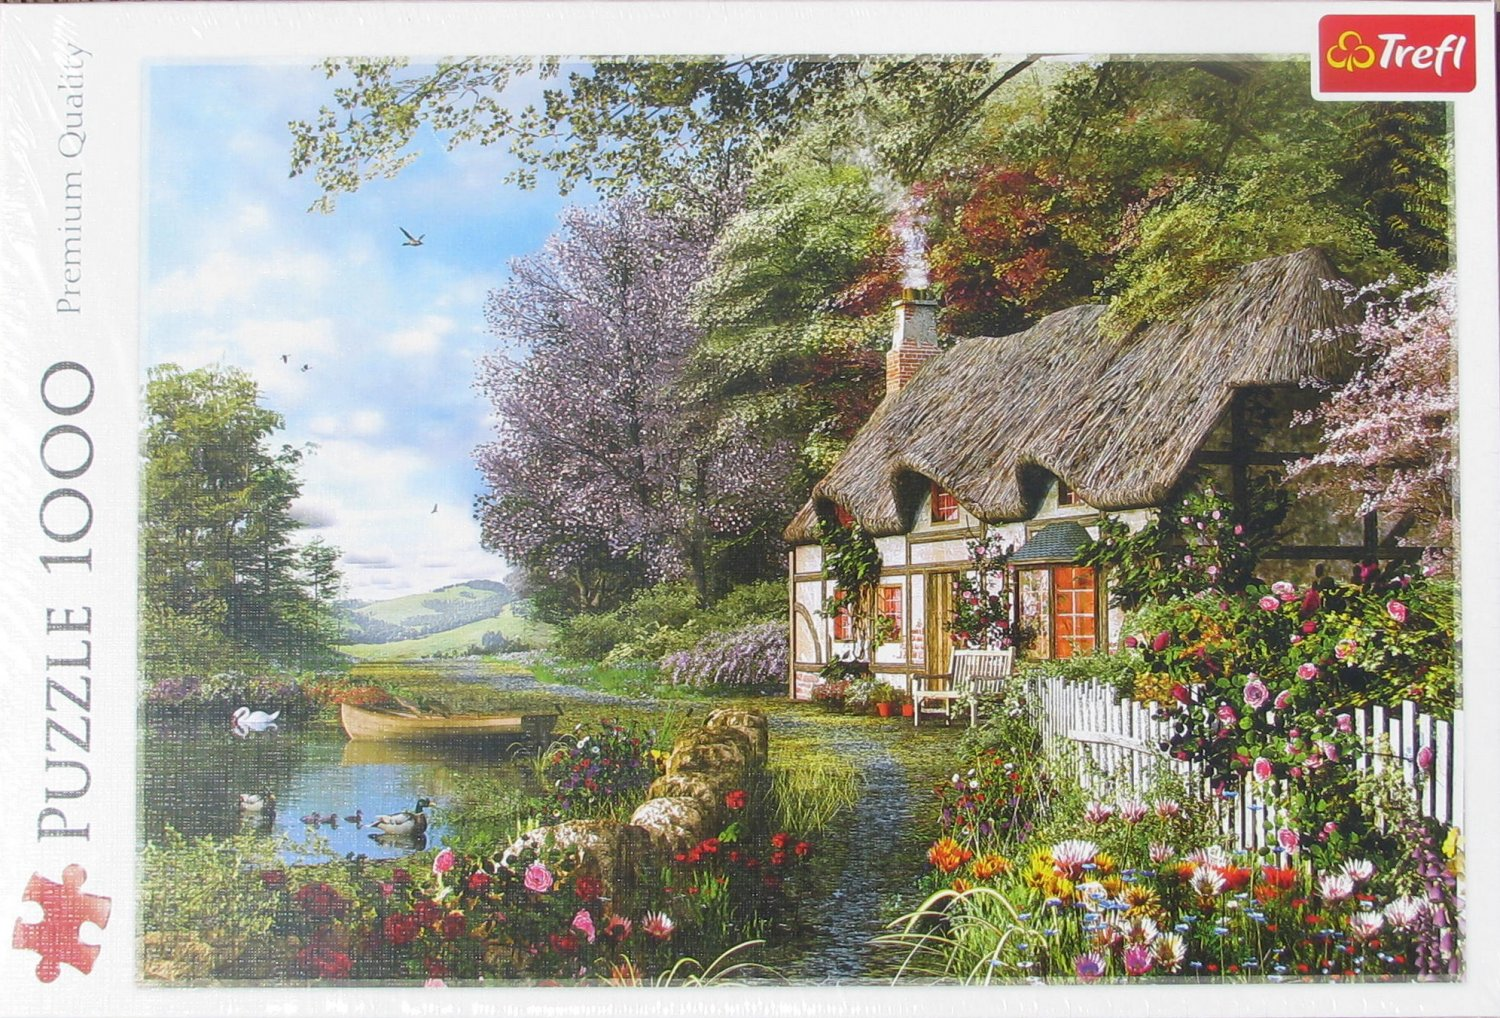 Trefl CHARMING NOOK 1000 pc Jigsaw Puzzle